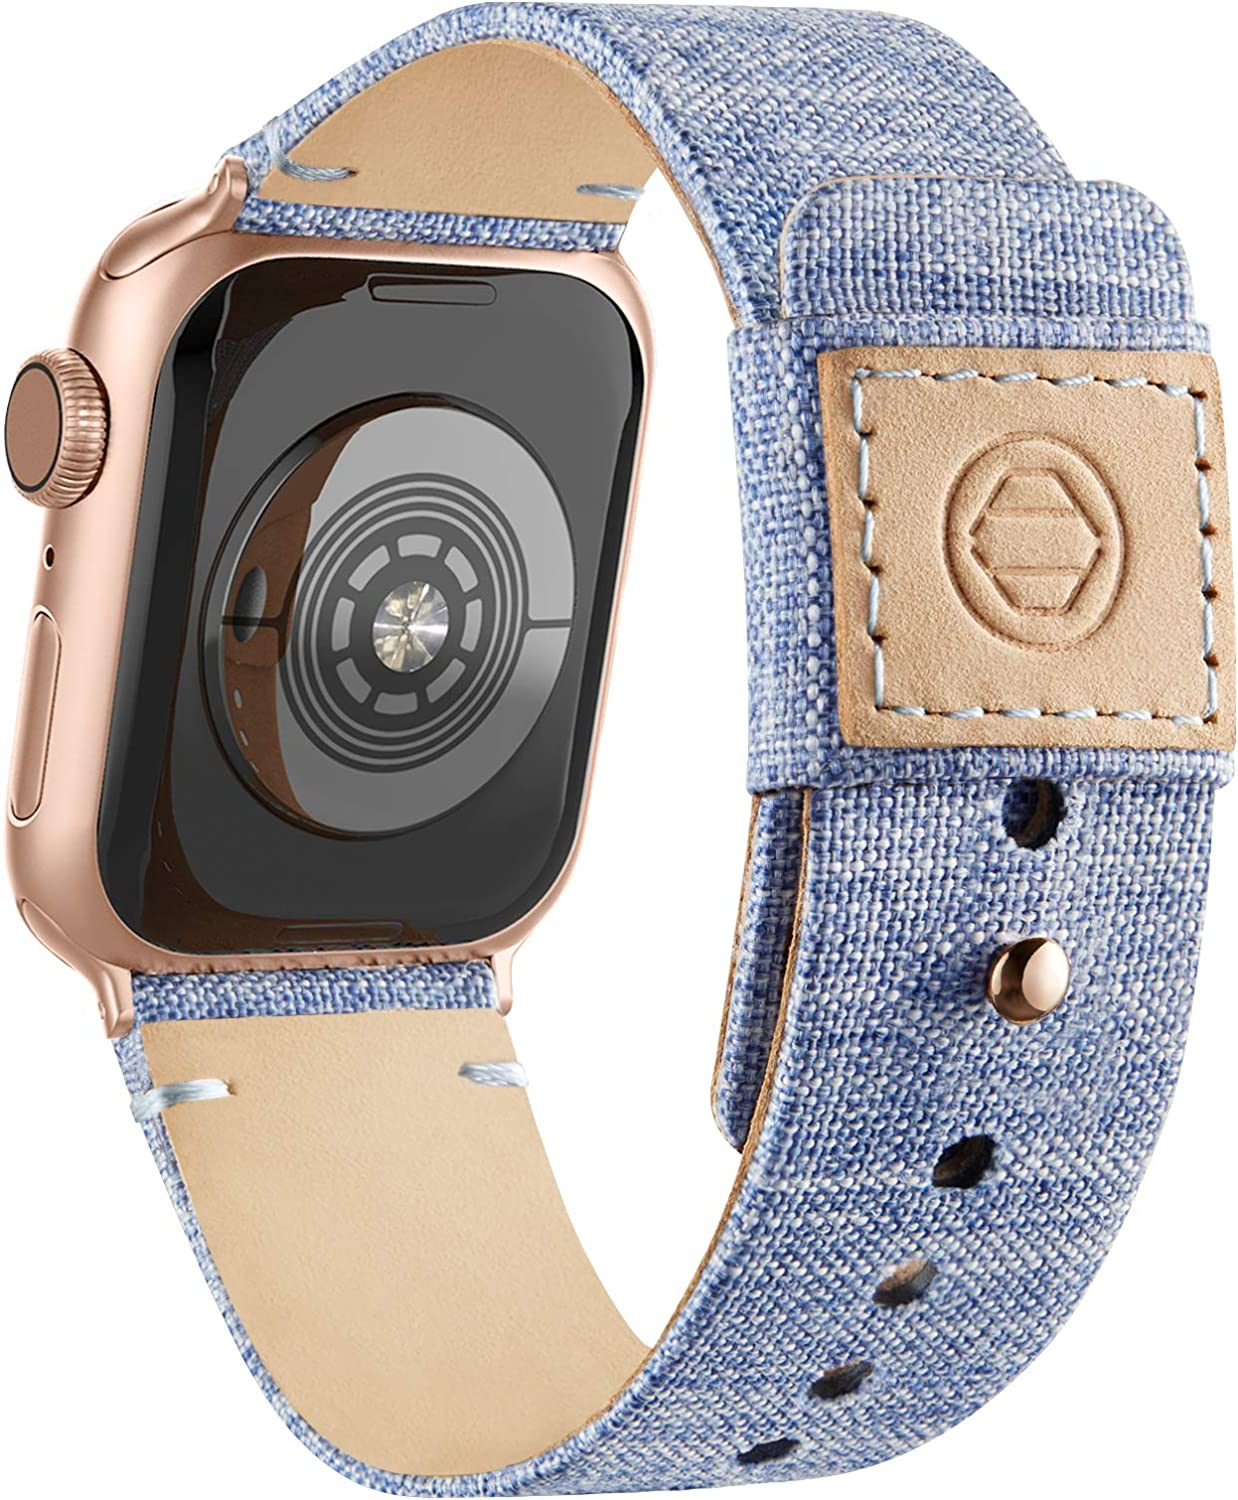 Adepoy Fabric Cloth Bands Compatible with Apple Watch 44mm 42mm 40mm 38mm, Canvas Strap with Soft Genuine Leather Lining and Snap Button for Apple iwatch Series 6/5/4/3/2/1 SE